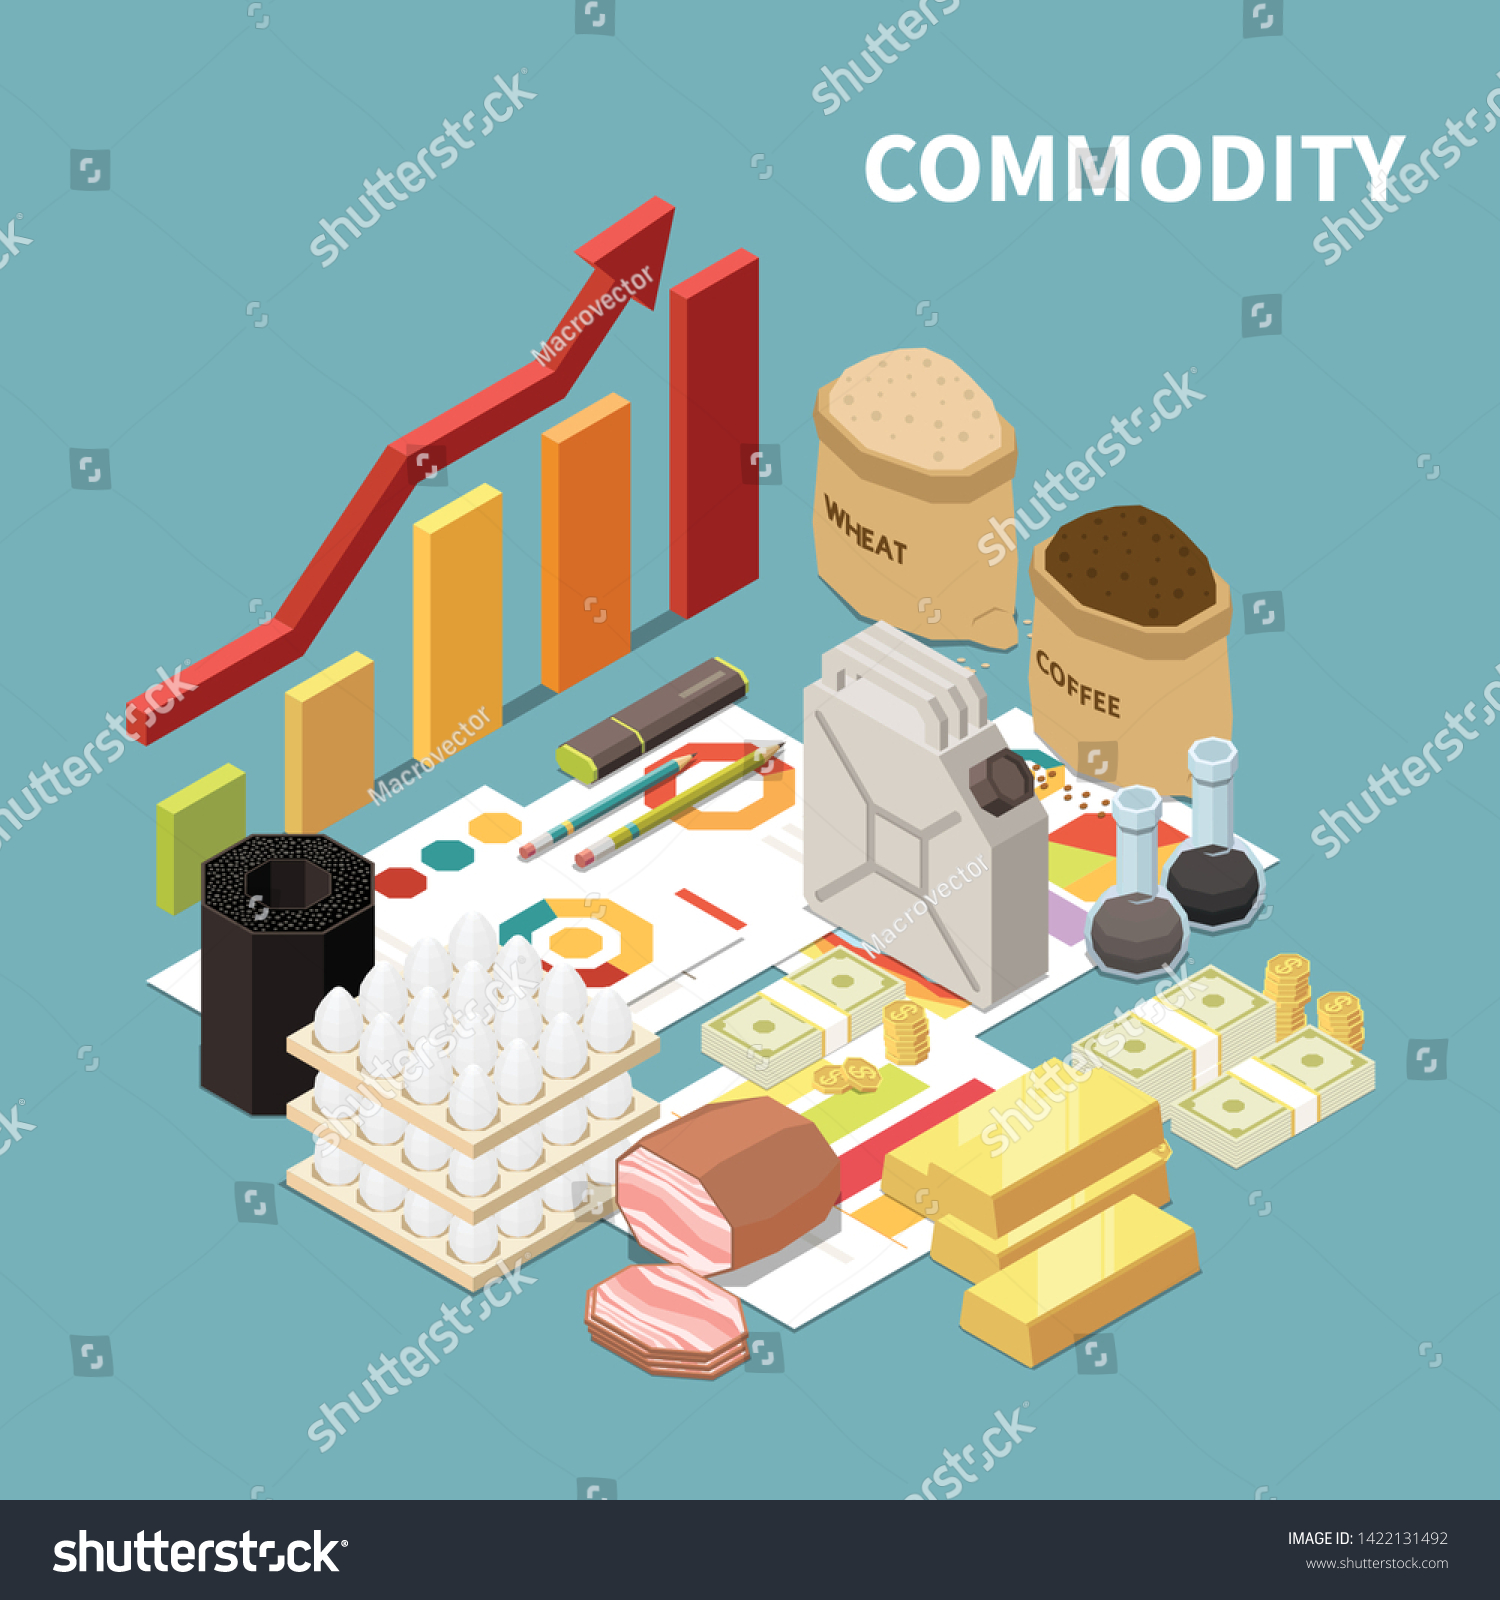 Commodity Isometric Composition Images Manufactured Goods